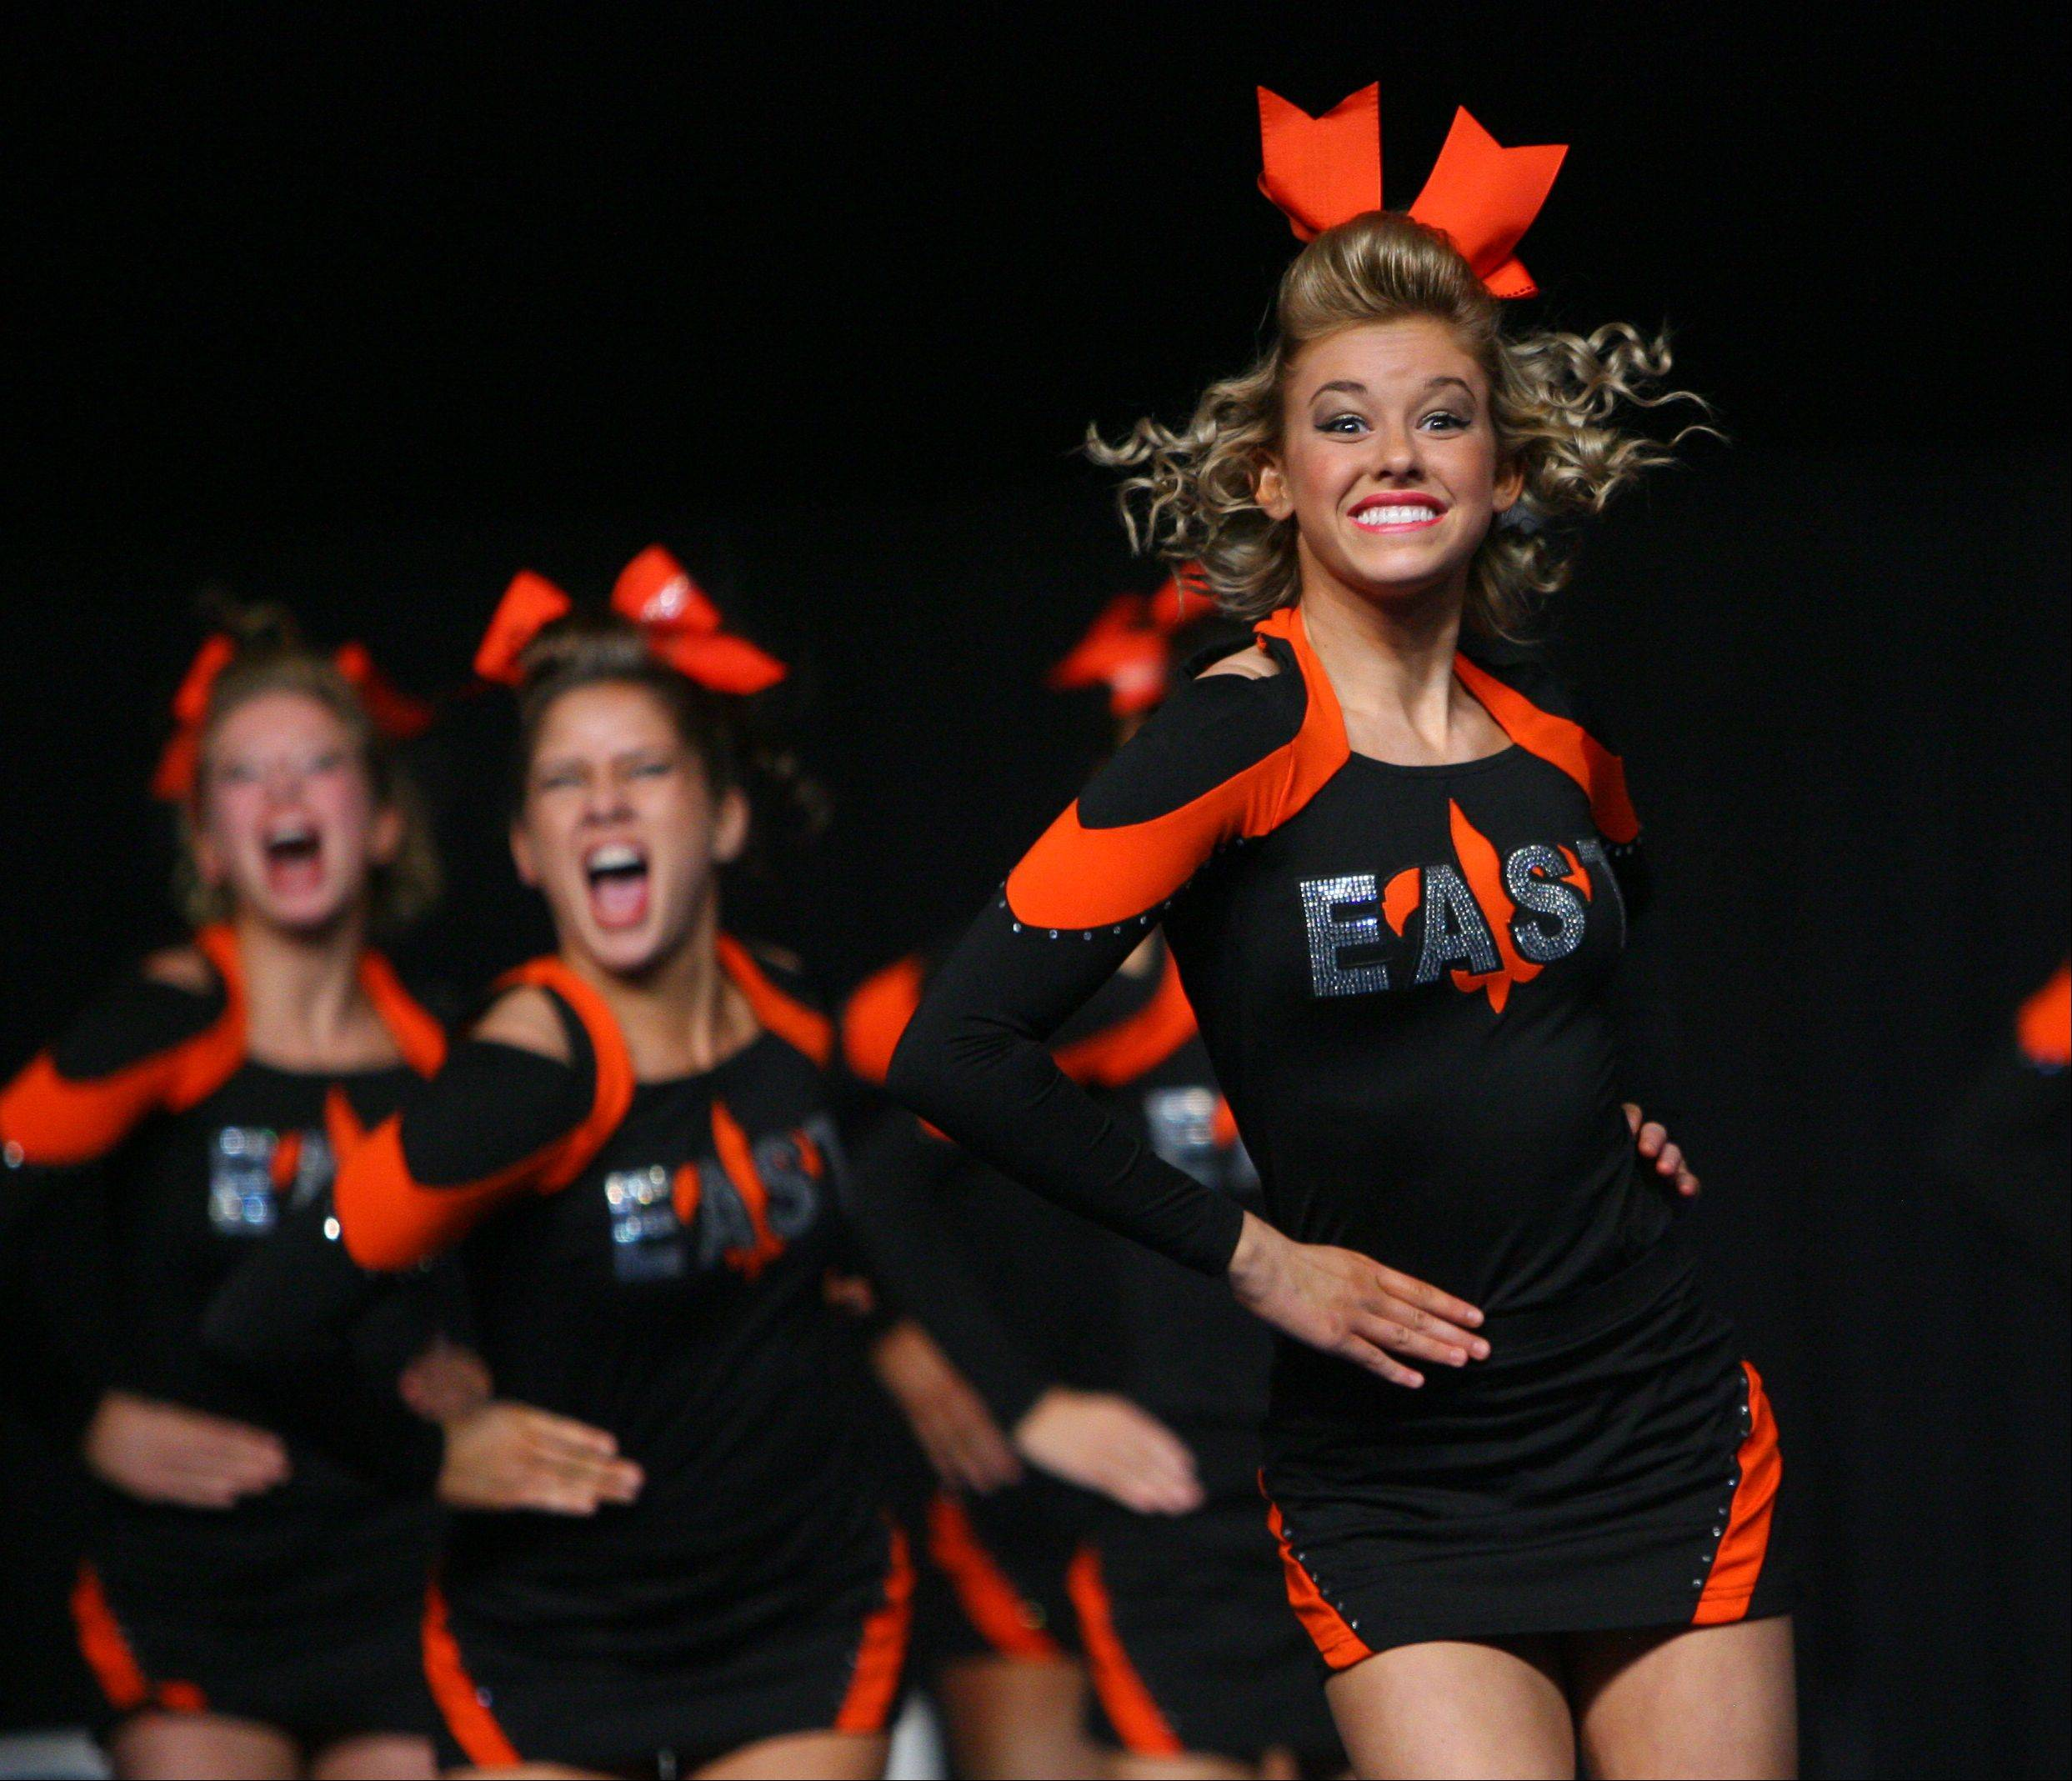 St. Charles East High School competes in the IHSA Competitive Cheerleading finals on Saturday at the U.S. Cellular Coliseum in Bloomington.